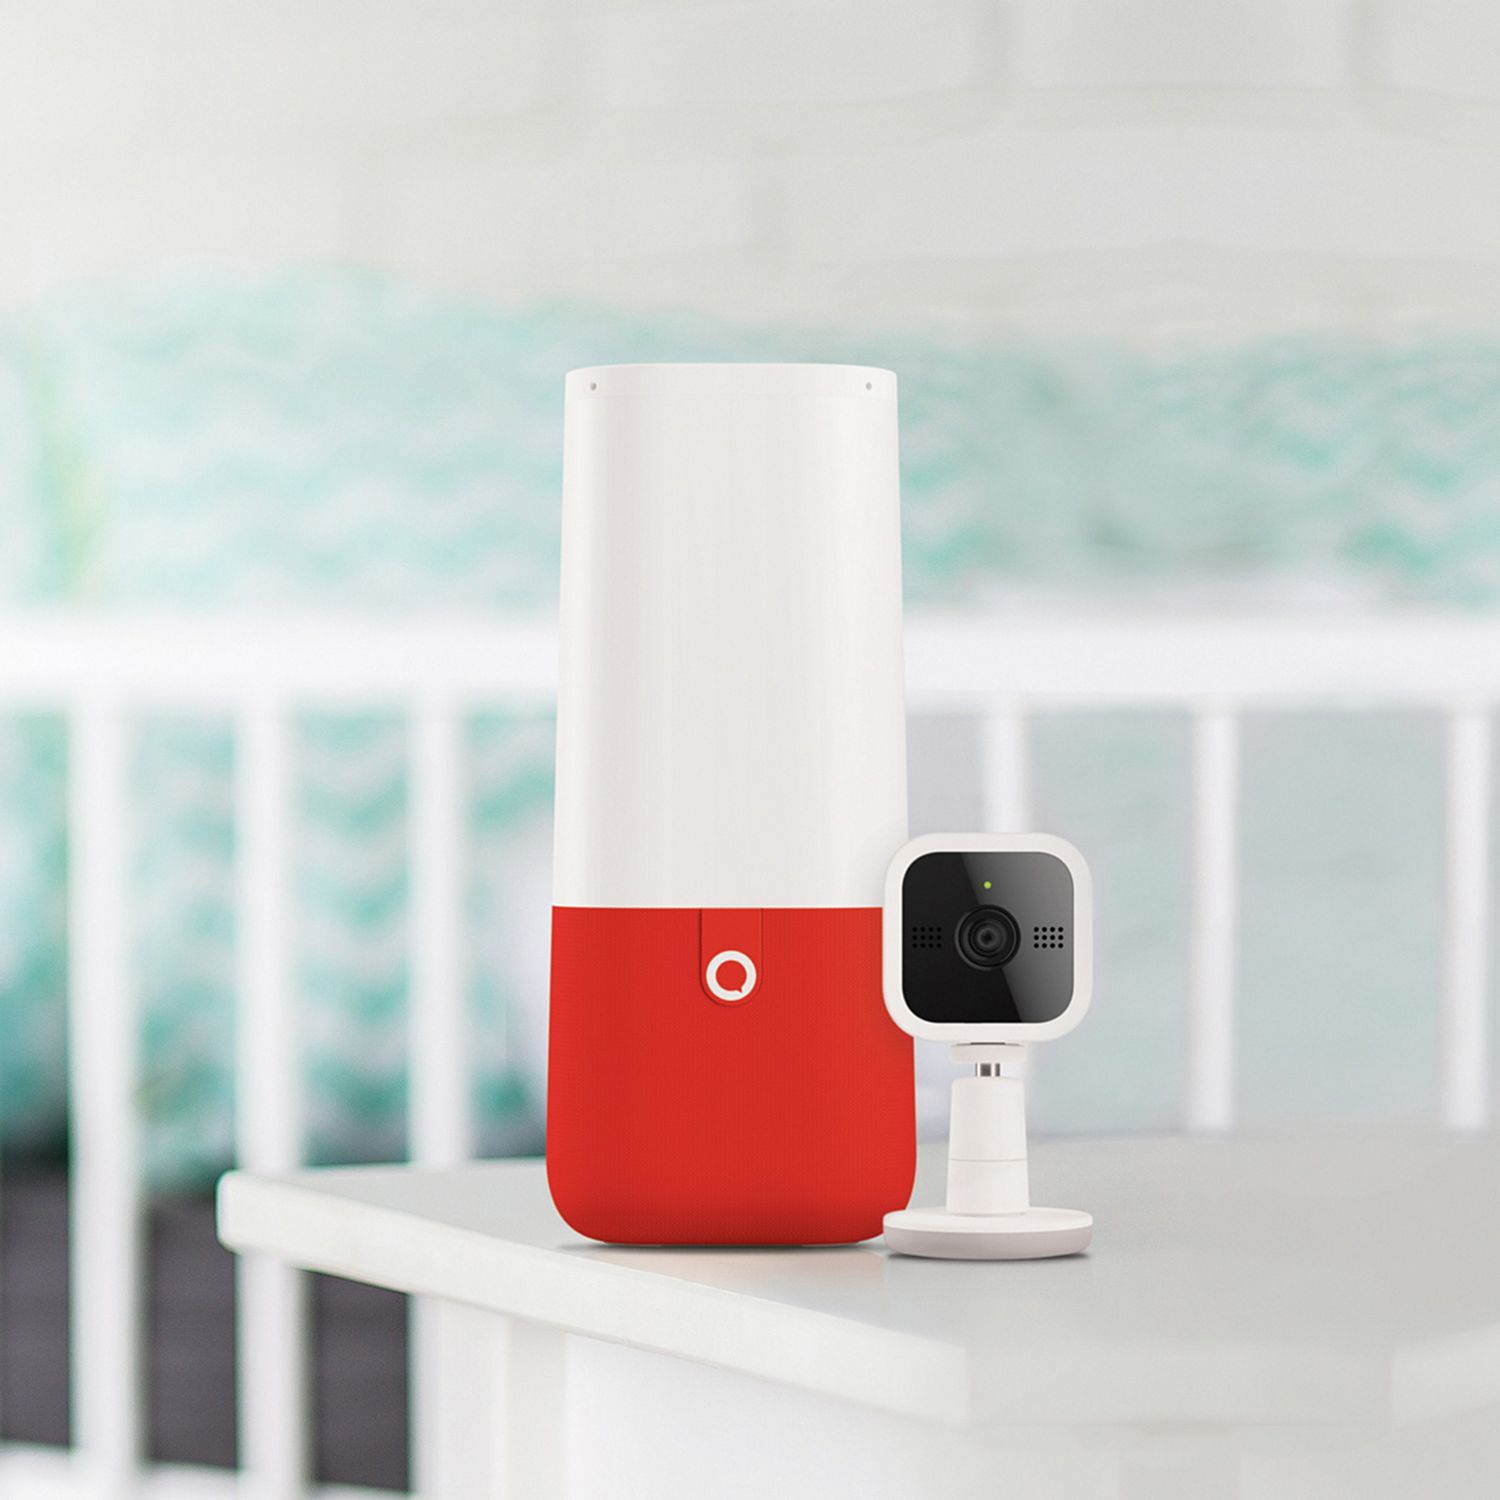 Aristotle baby monitor smart speaker black friday deals